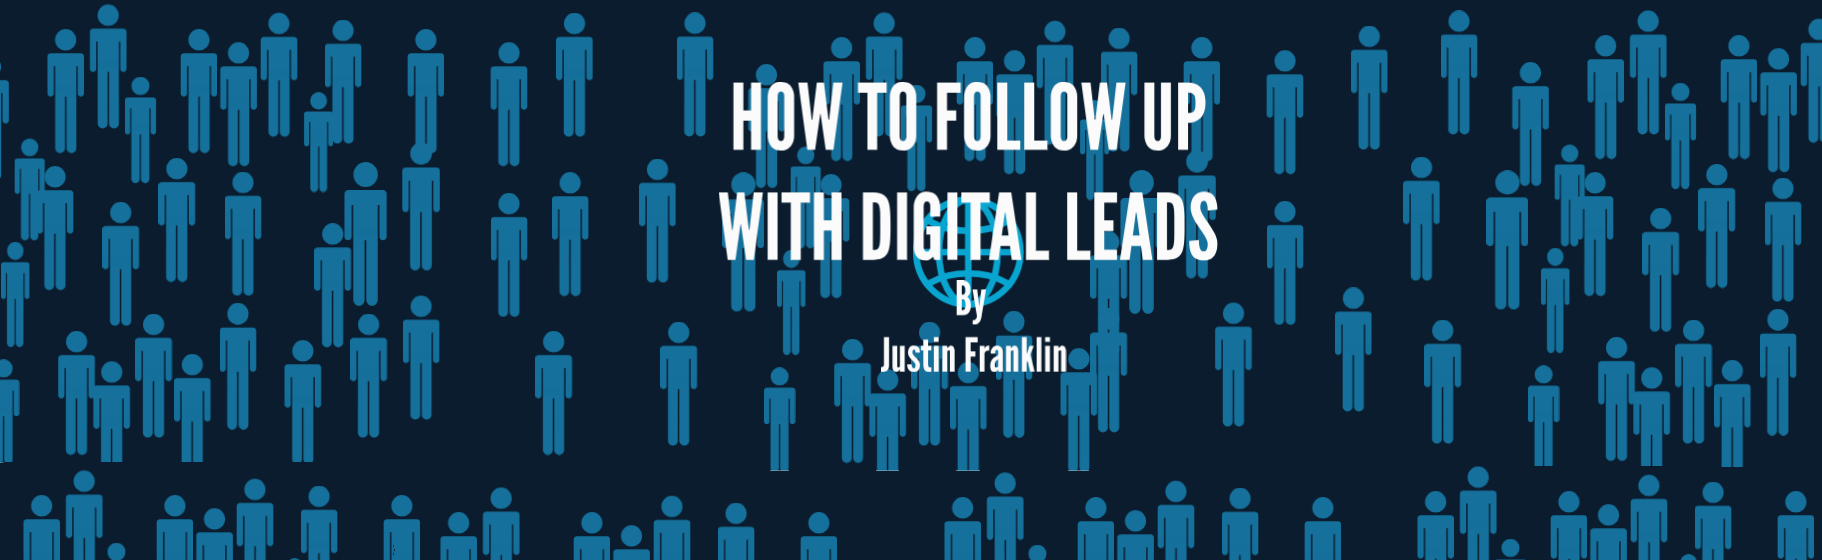 how to follow up wholesale leads